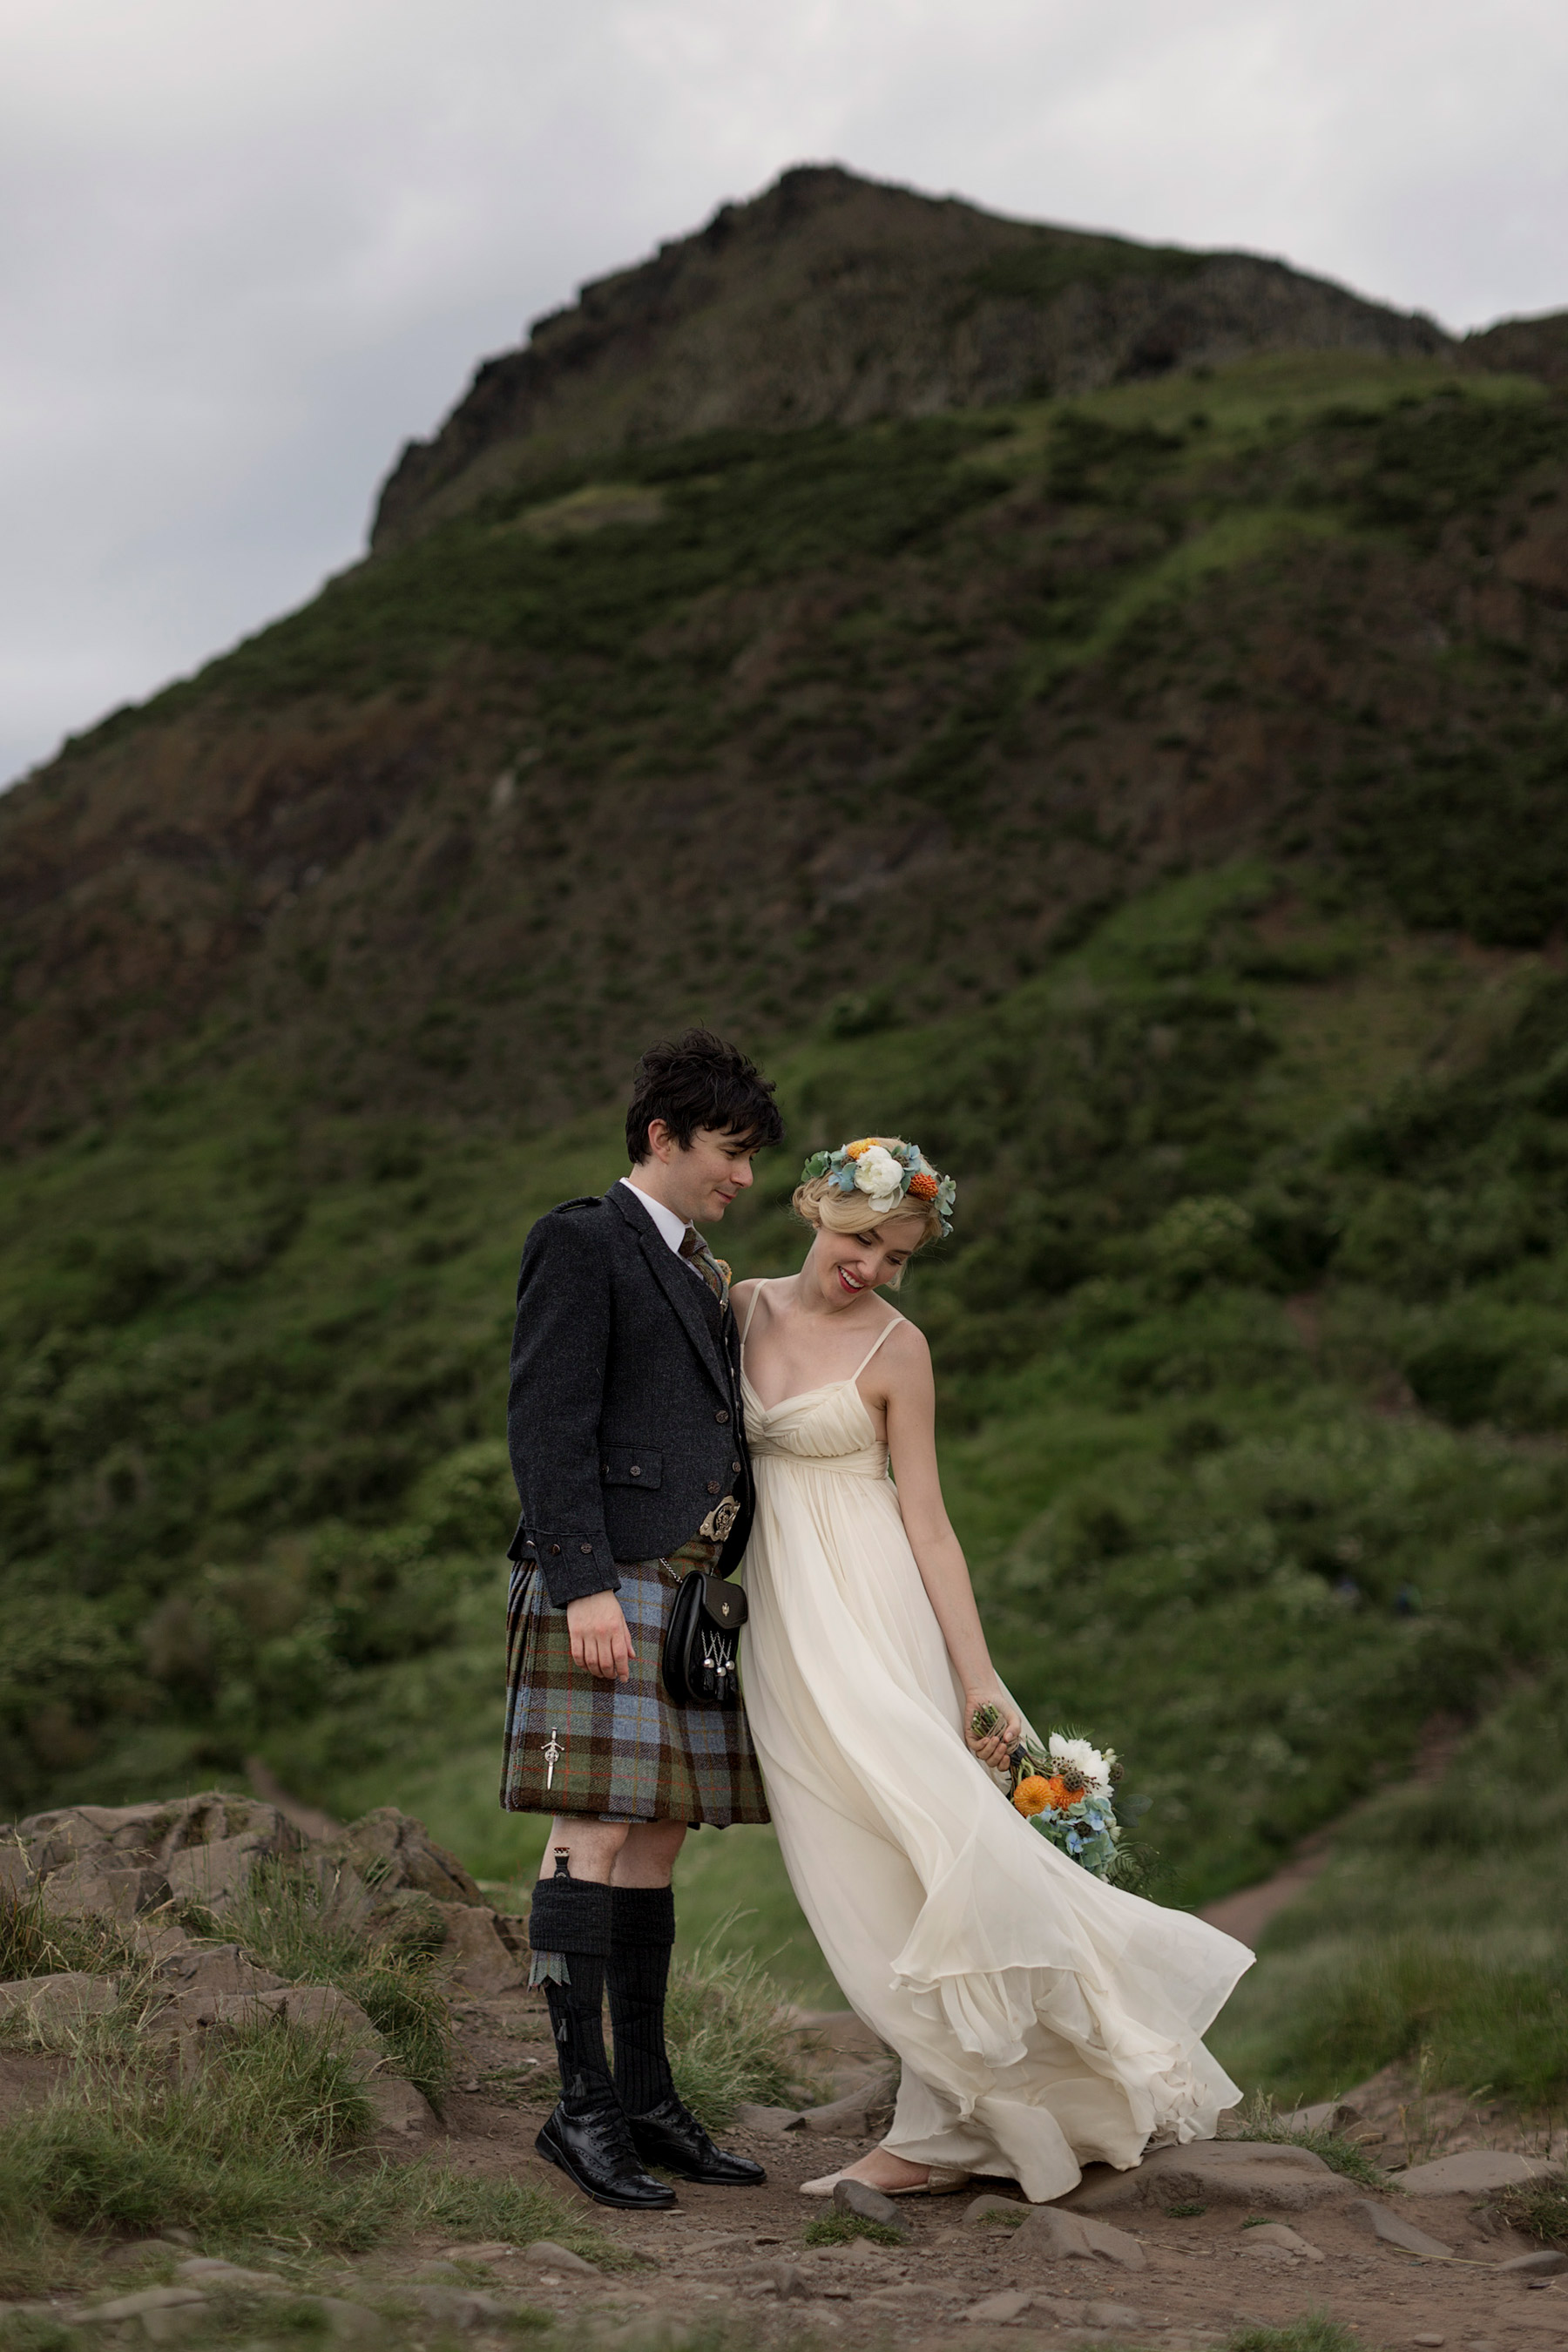 jenni melear & stuart mcleod wedding photo